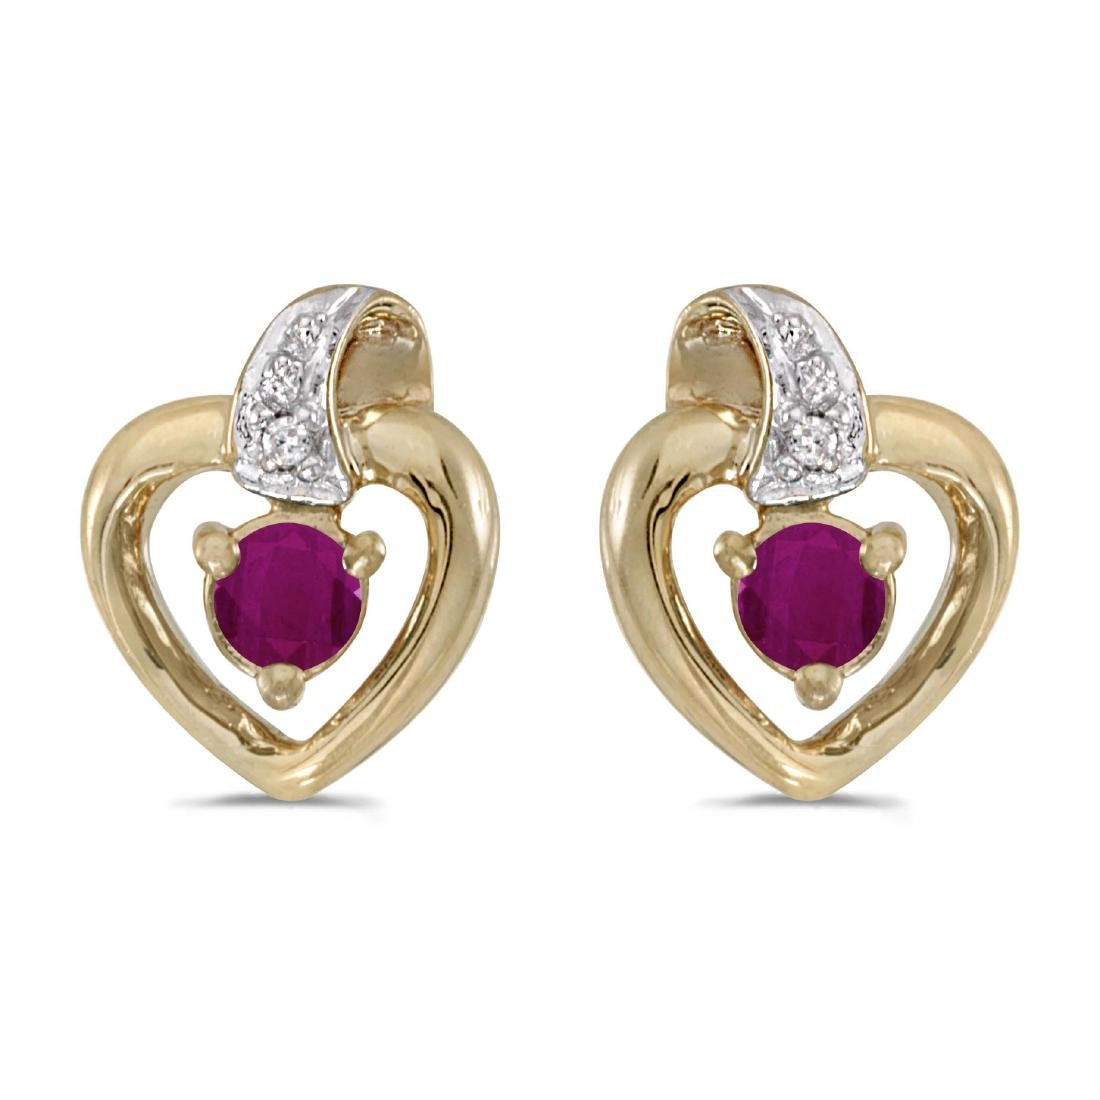 Certified 14k Yellow Gold Round Ruby And Diamond Heart